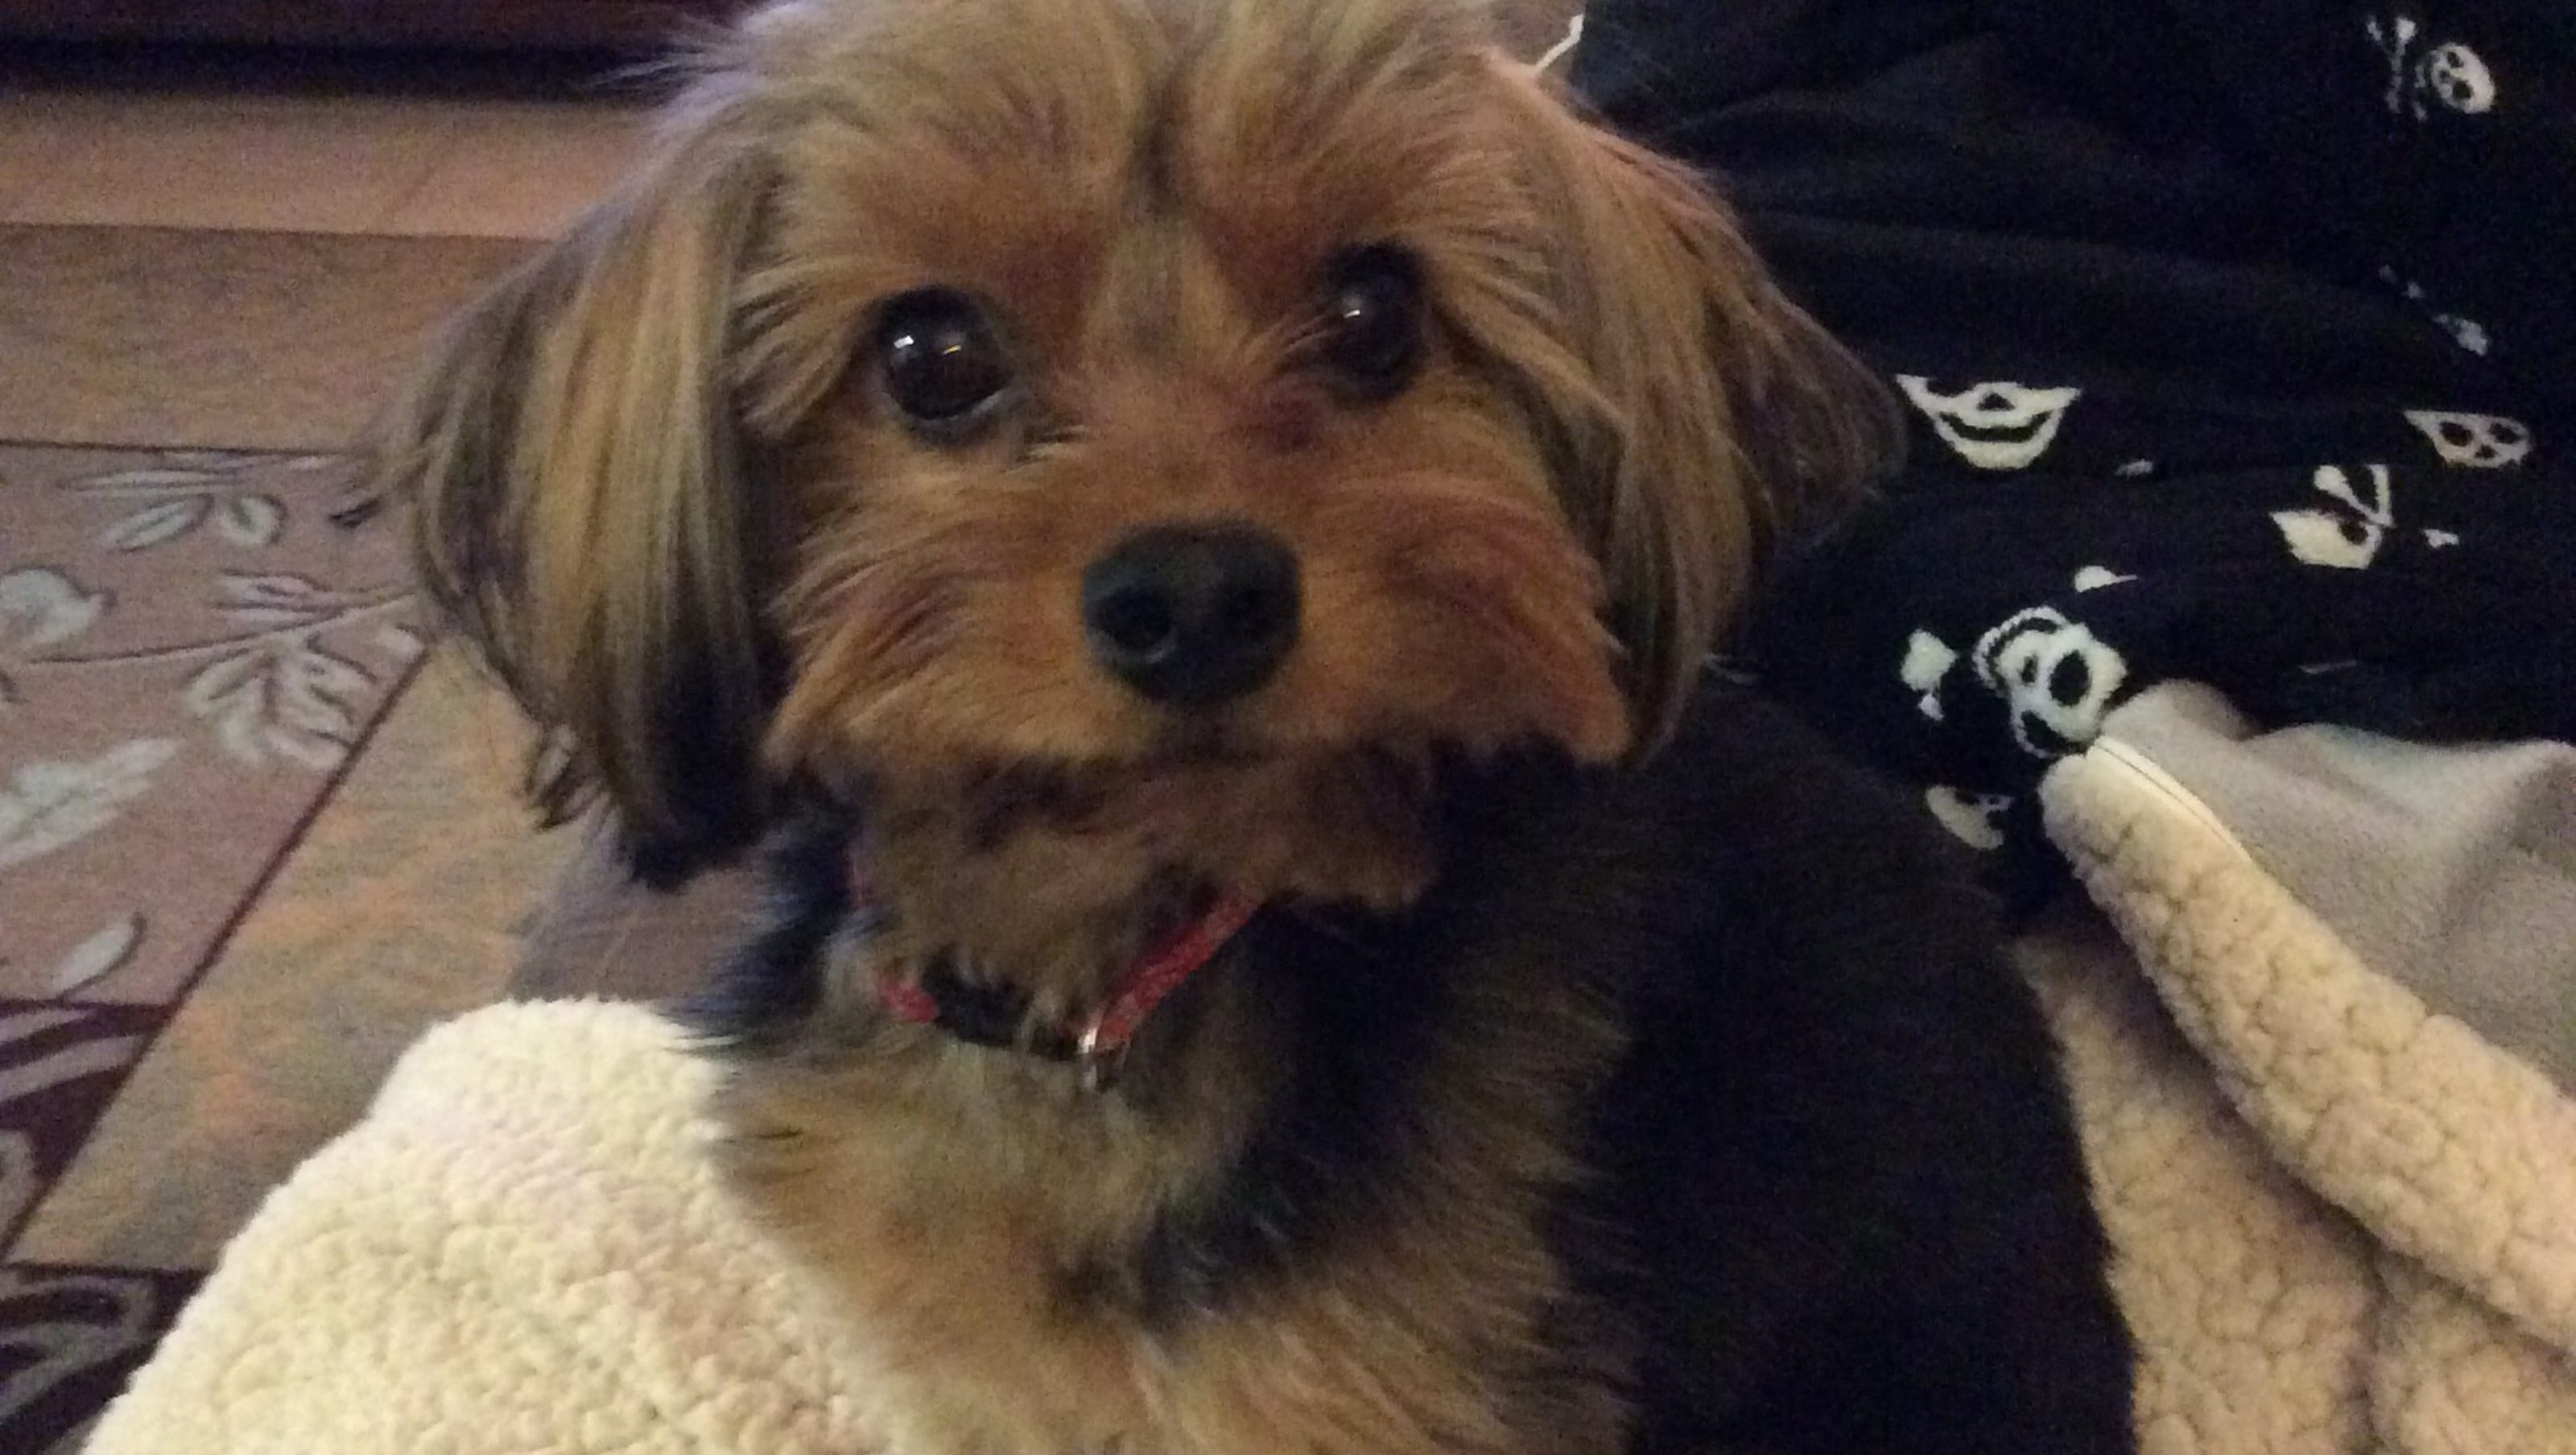 Lost Dog Reunited With Owner After Ads In Democrat Social Media